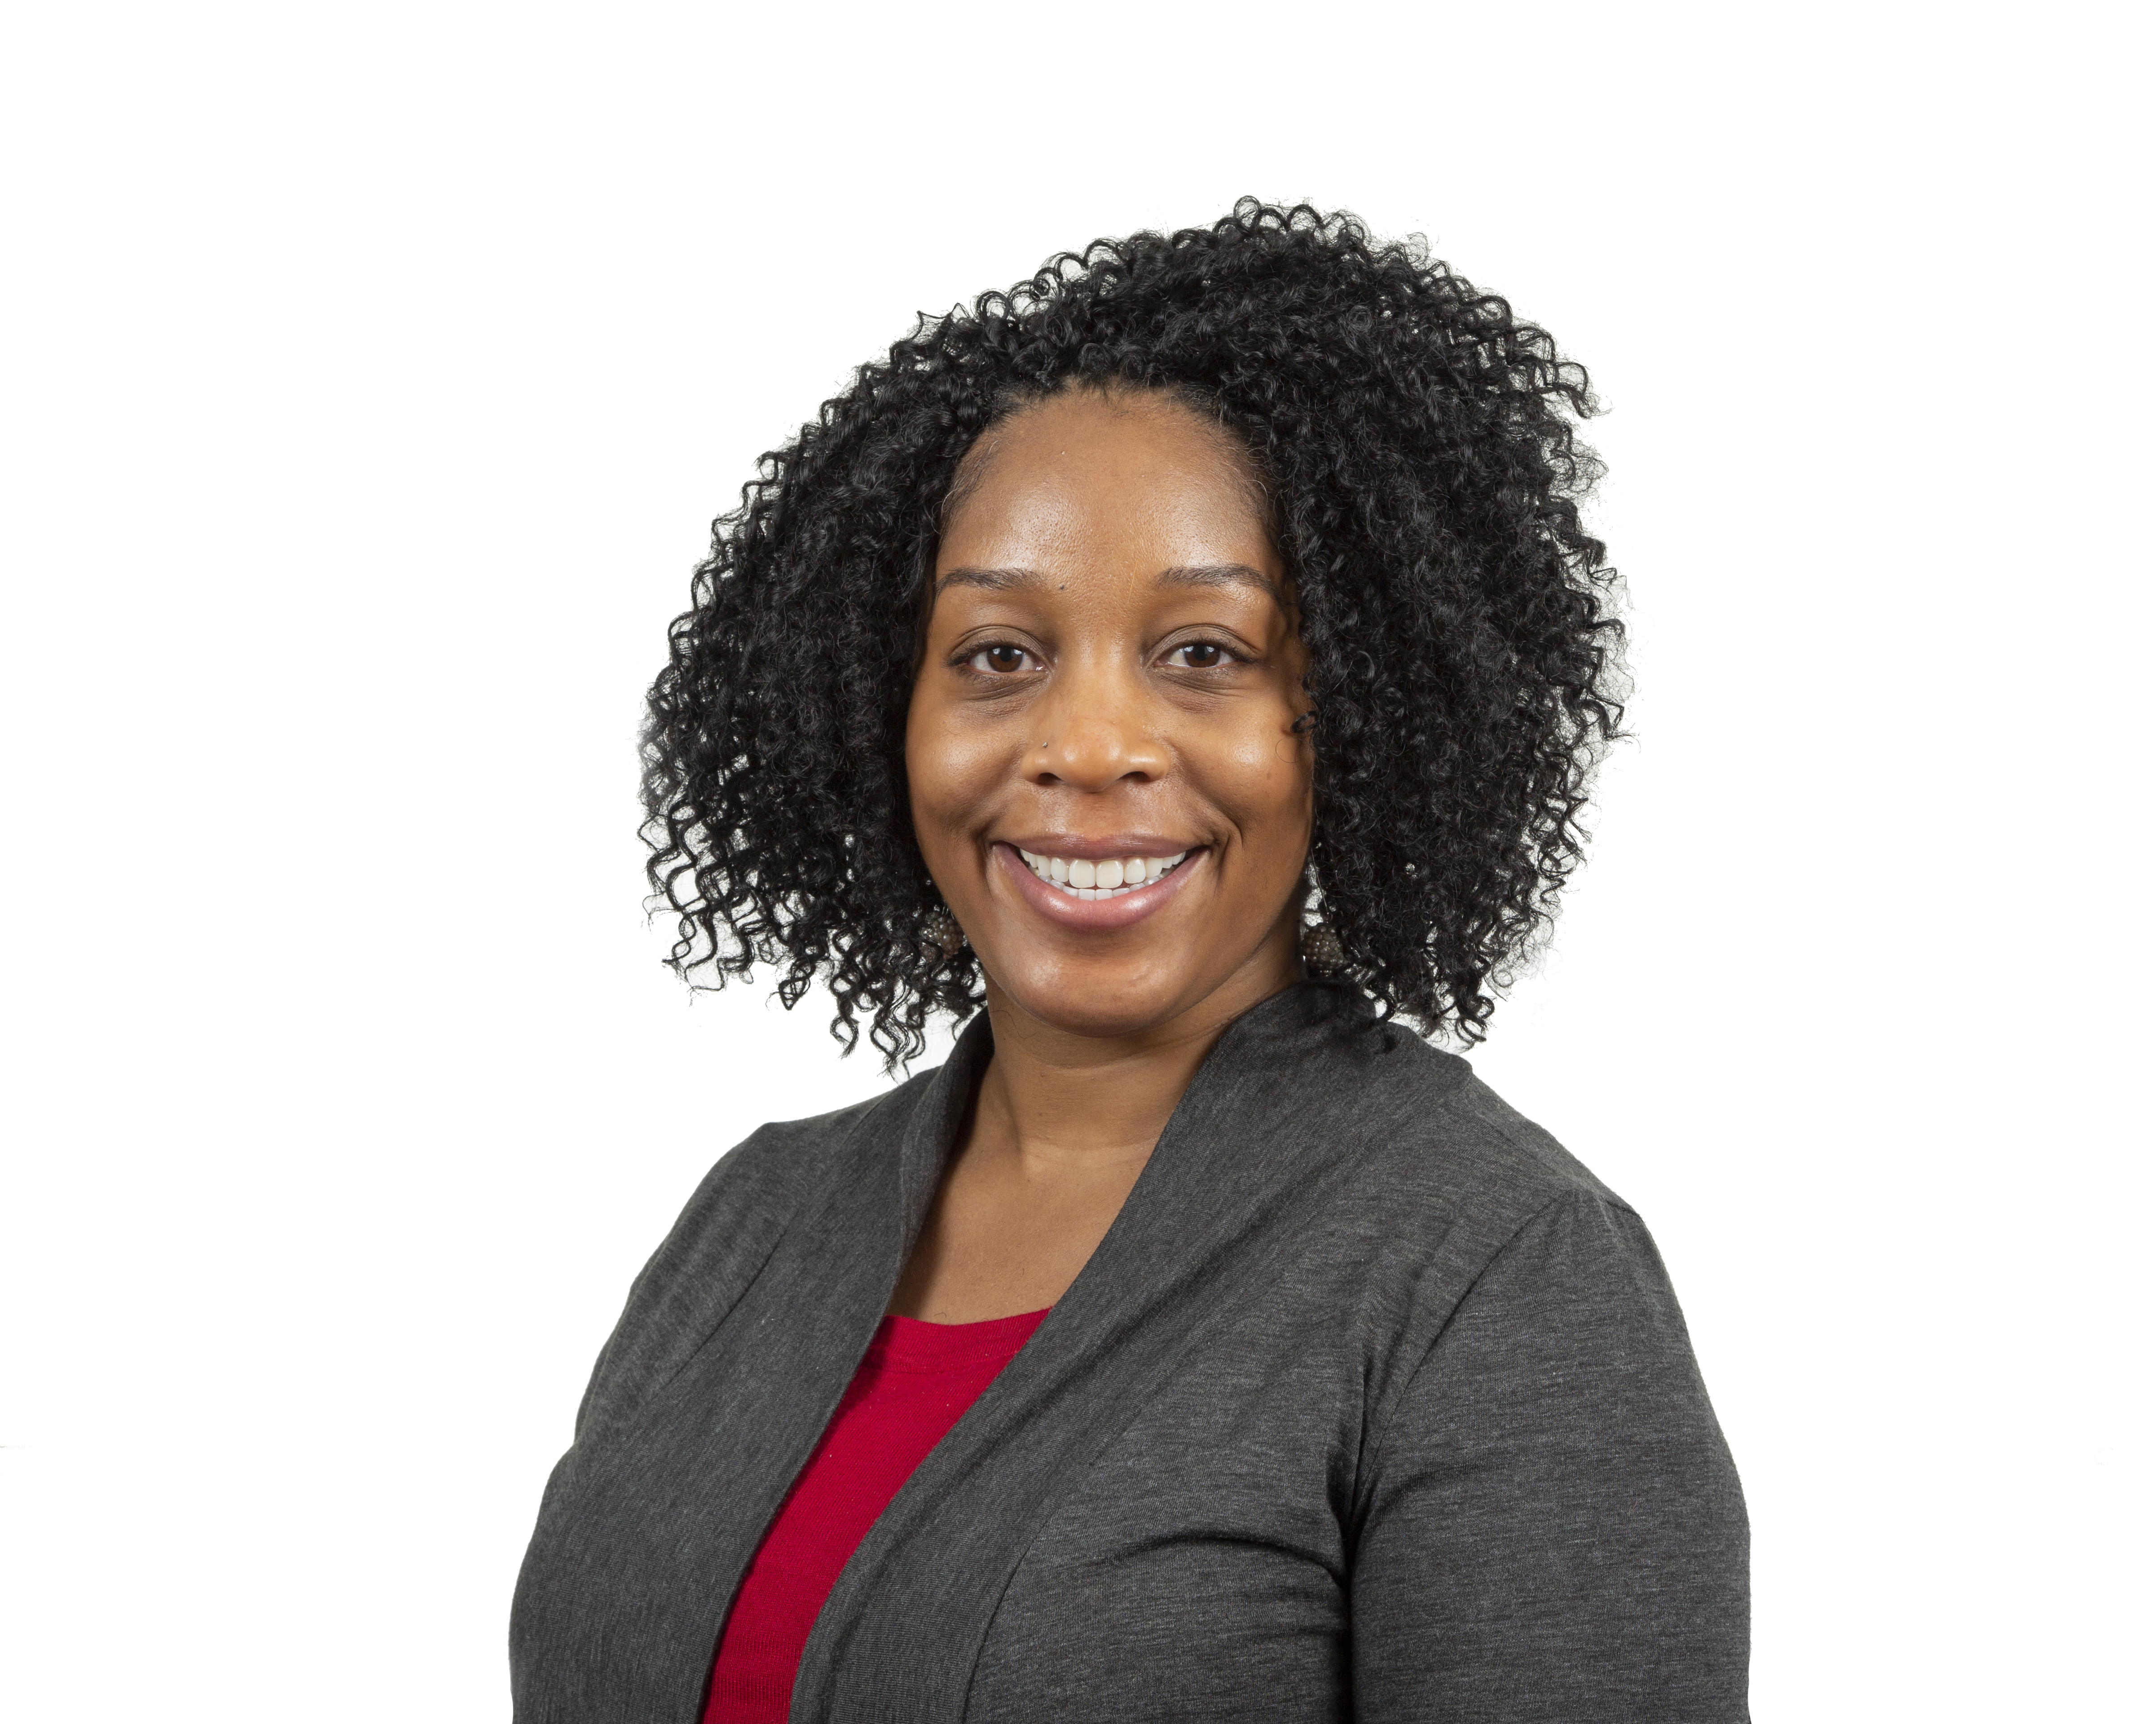 Dr. LaShica Waters